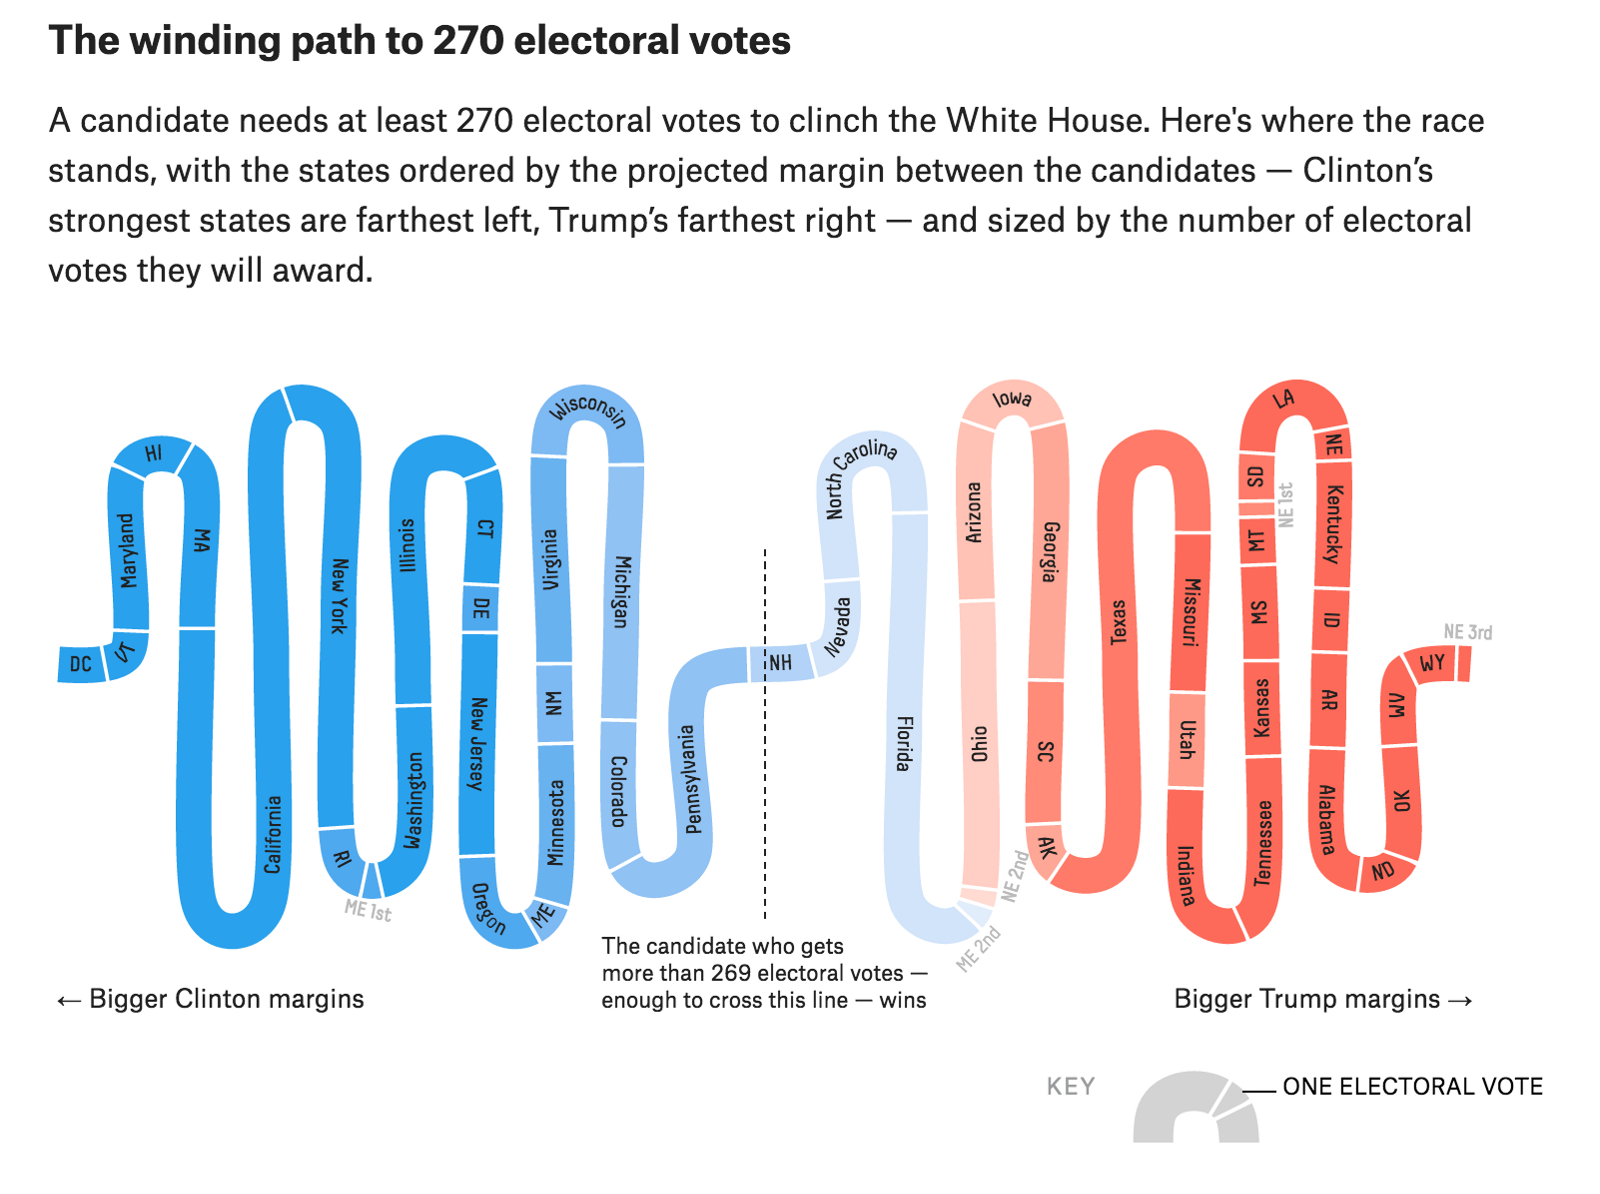 Nate Silver S Predictions And Polling Data For The 2016 Presidential Election Between Hillary Clinton Donald Trumpprojects Fivethirtyeight